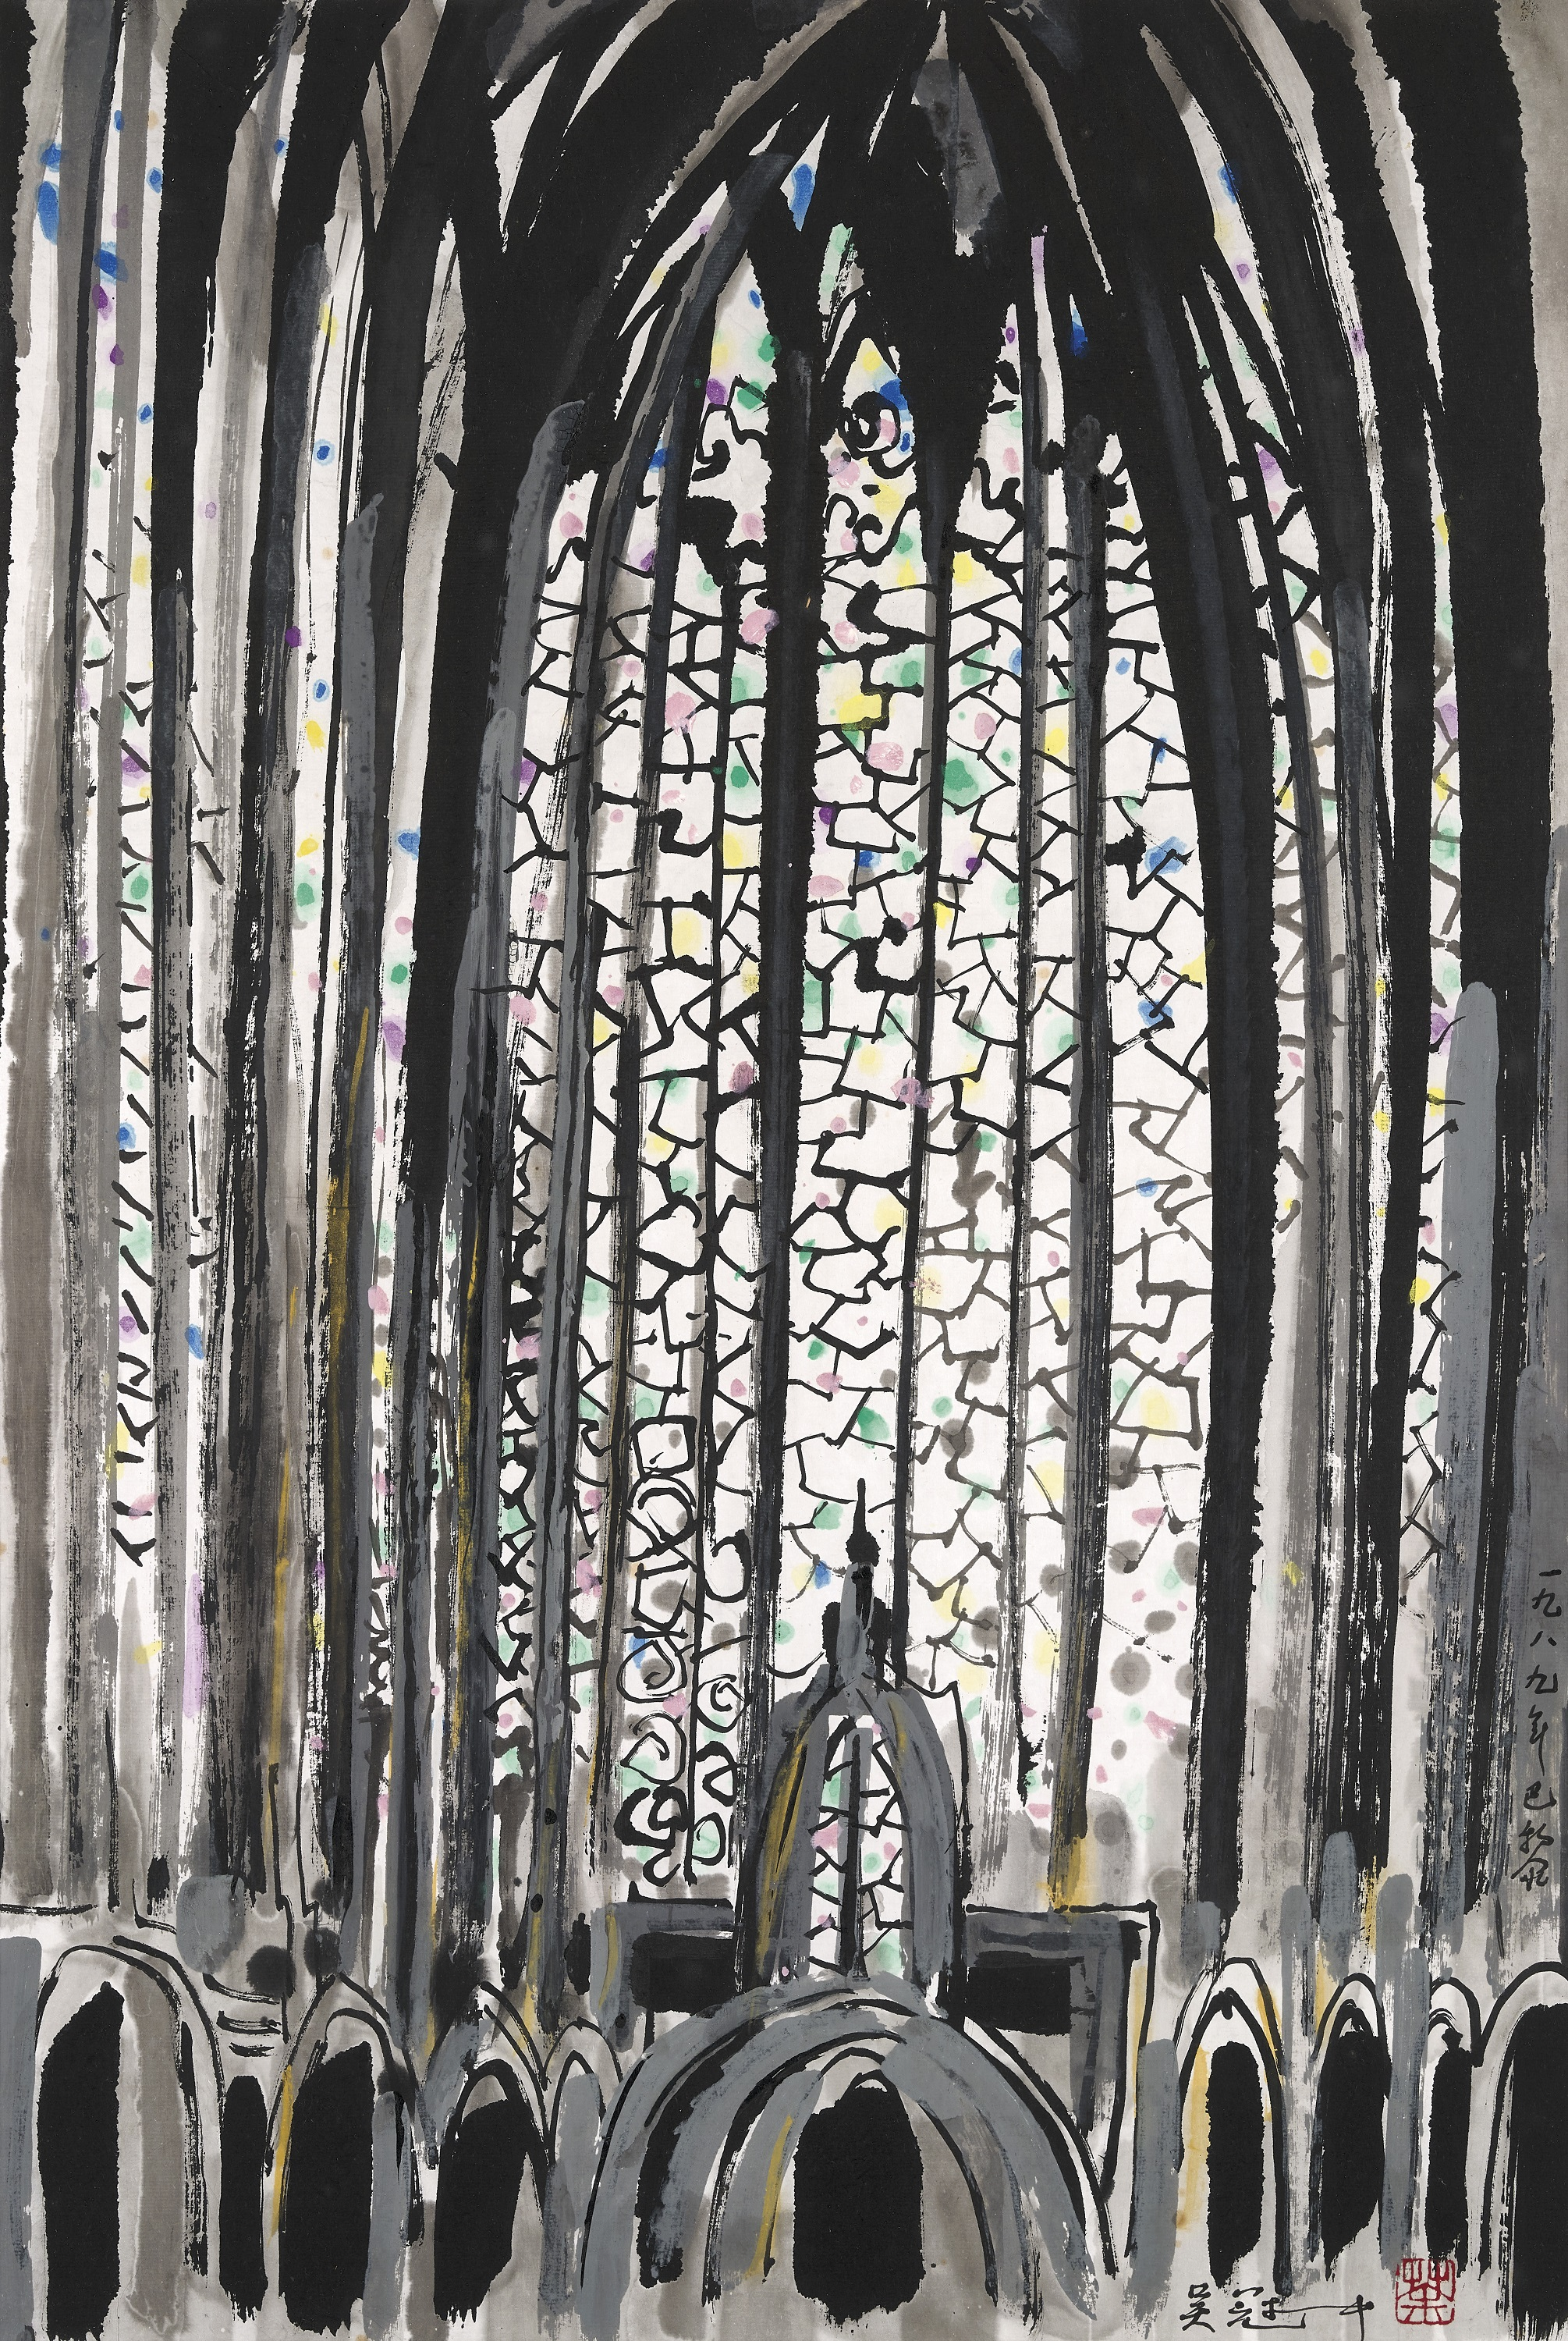 Wu Guanzhong (1919-2010), Church in Paris, 1989. Scroll, mounted and framed, ink and colour on paper. 67.5 x 45 cm. (26 ⅝ x 17 ¾ in.). Estimate HK$2,000,000 - 3,000,000. Offered in Fine Chinese Modern and Contemporary Ink Paintings on 1 December at Christie's in Hong Kong